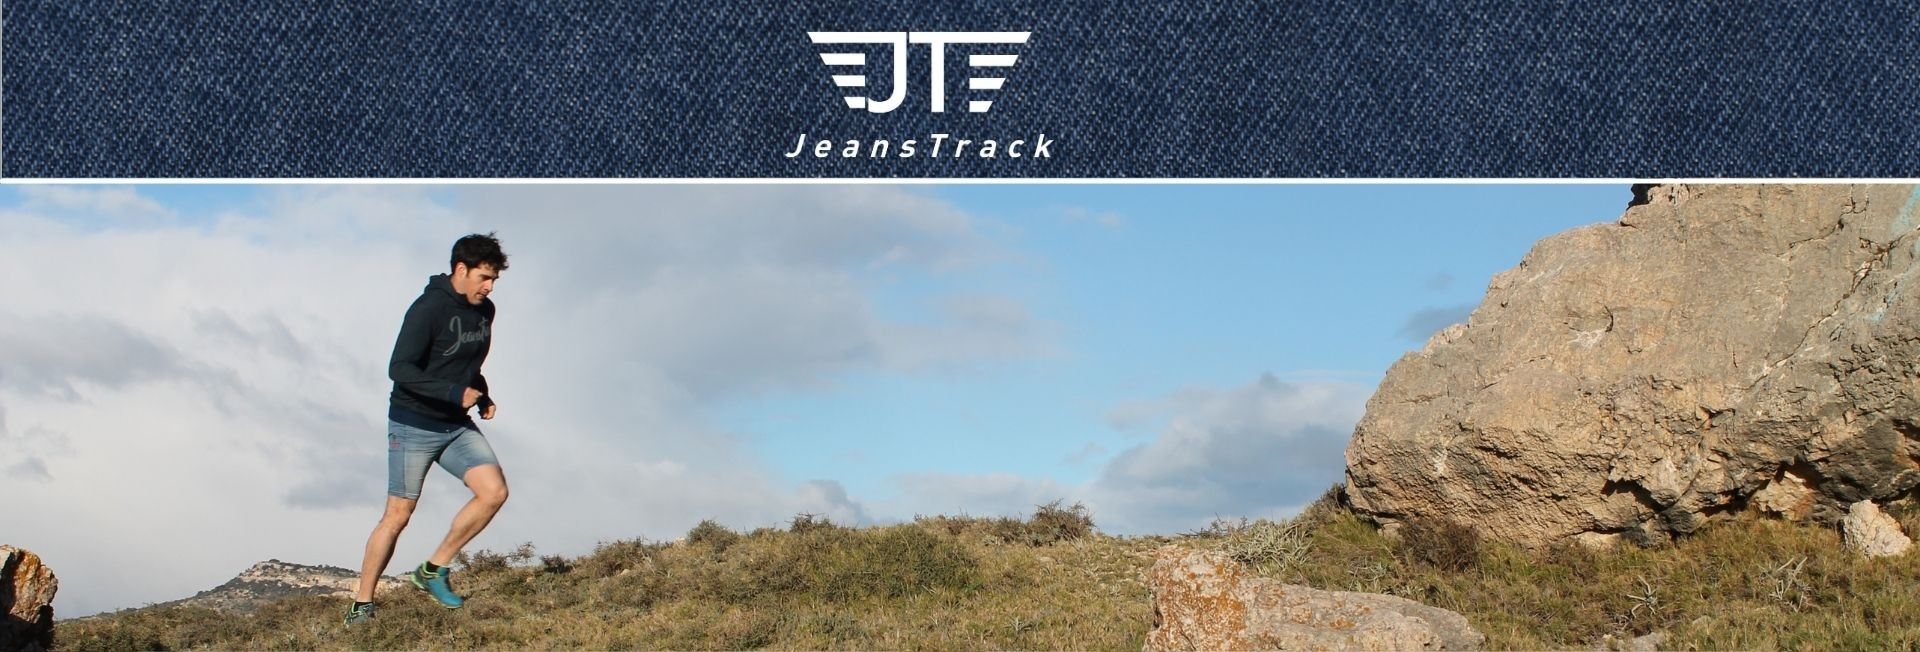 JEANSTRACK ropa para trail running e indoor training